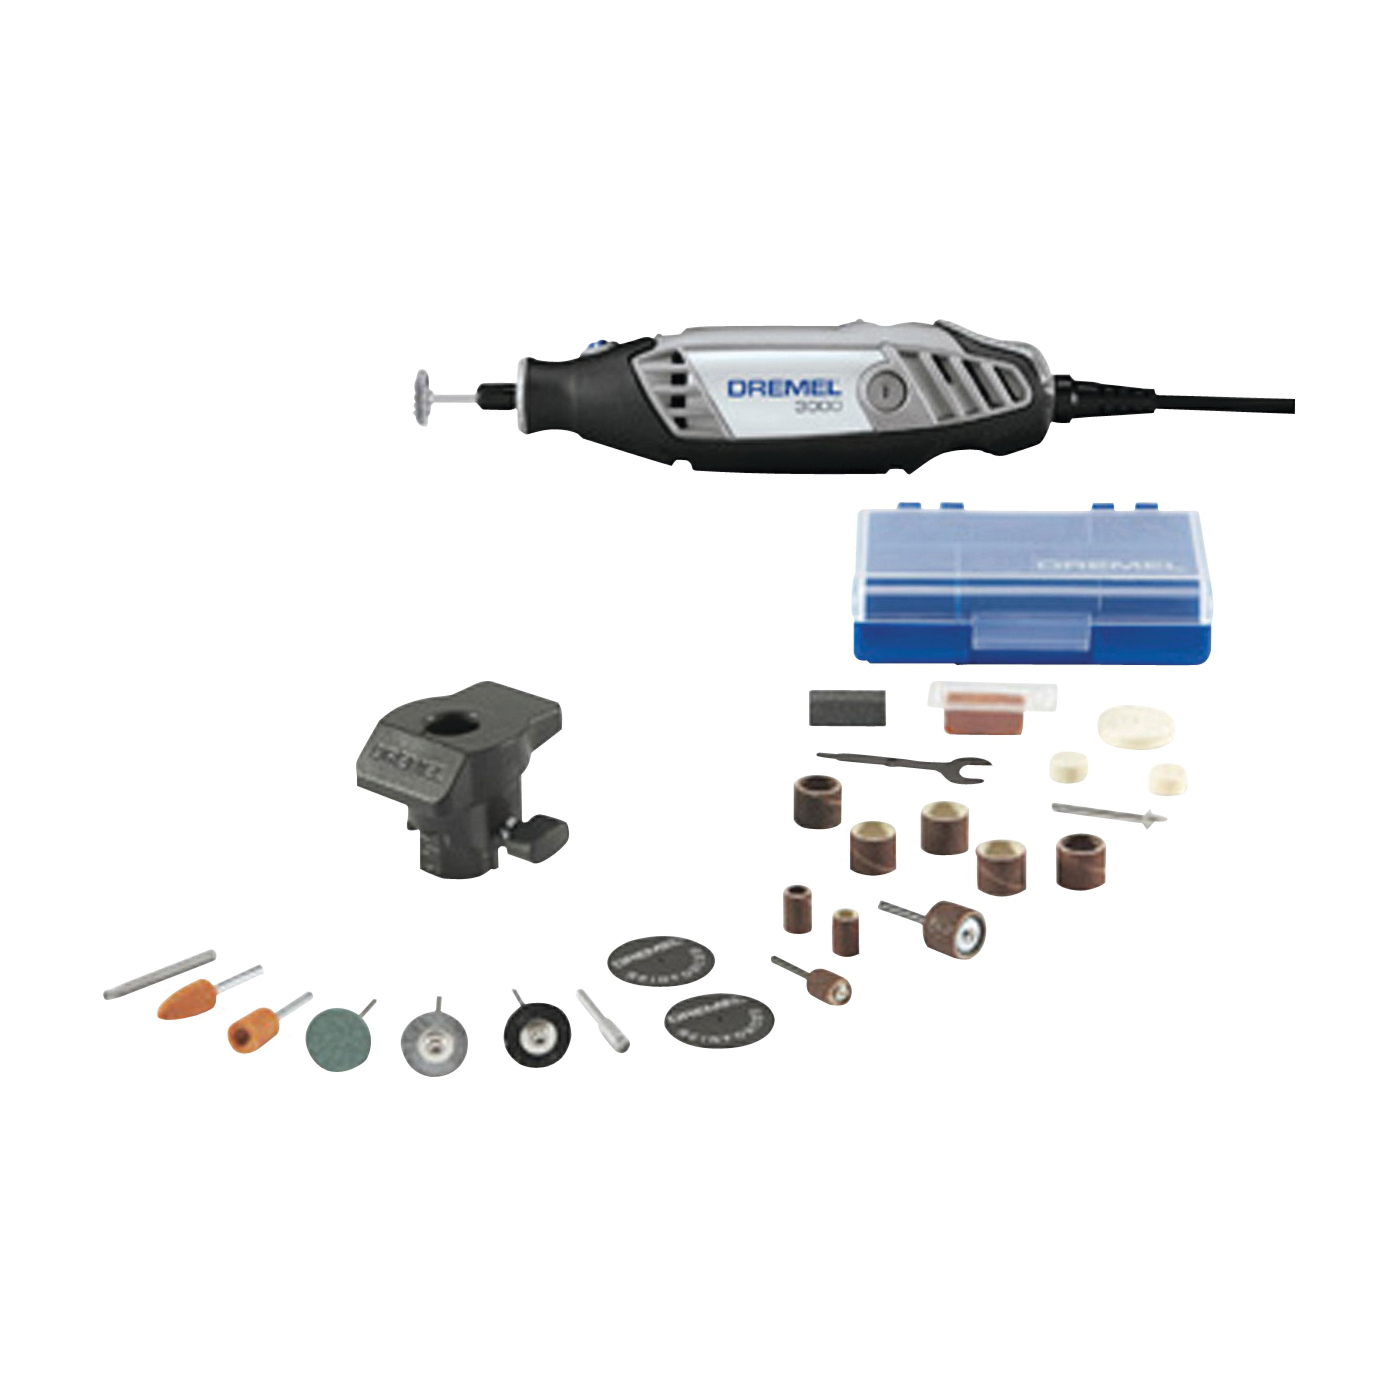 Picture of DREMEL 3000-1/24 Rotary Tool Kit, 120 V, 1.2 A, 1/32 to 1/8 in Chuck, Keyed Chuck, 5000 to 35,000 rpm Speed